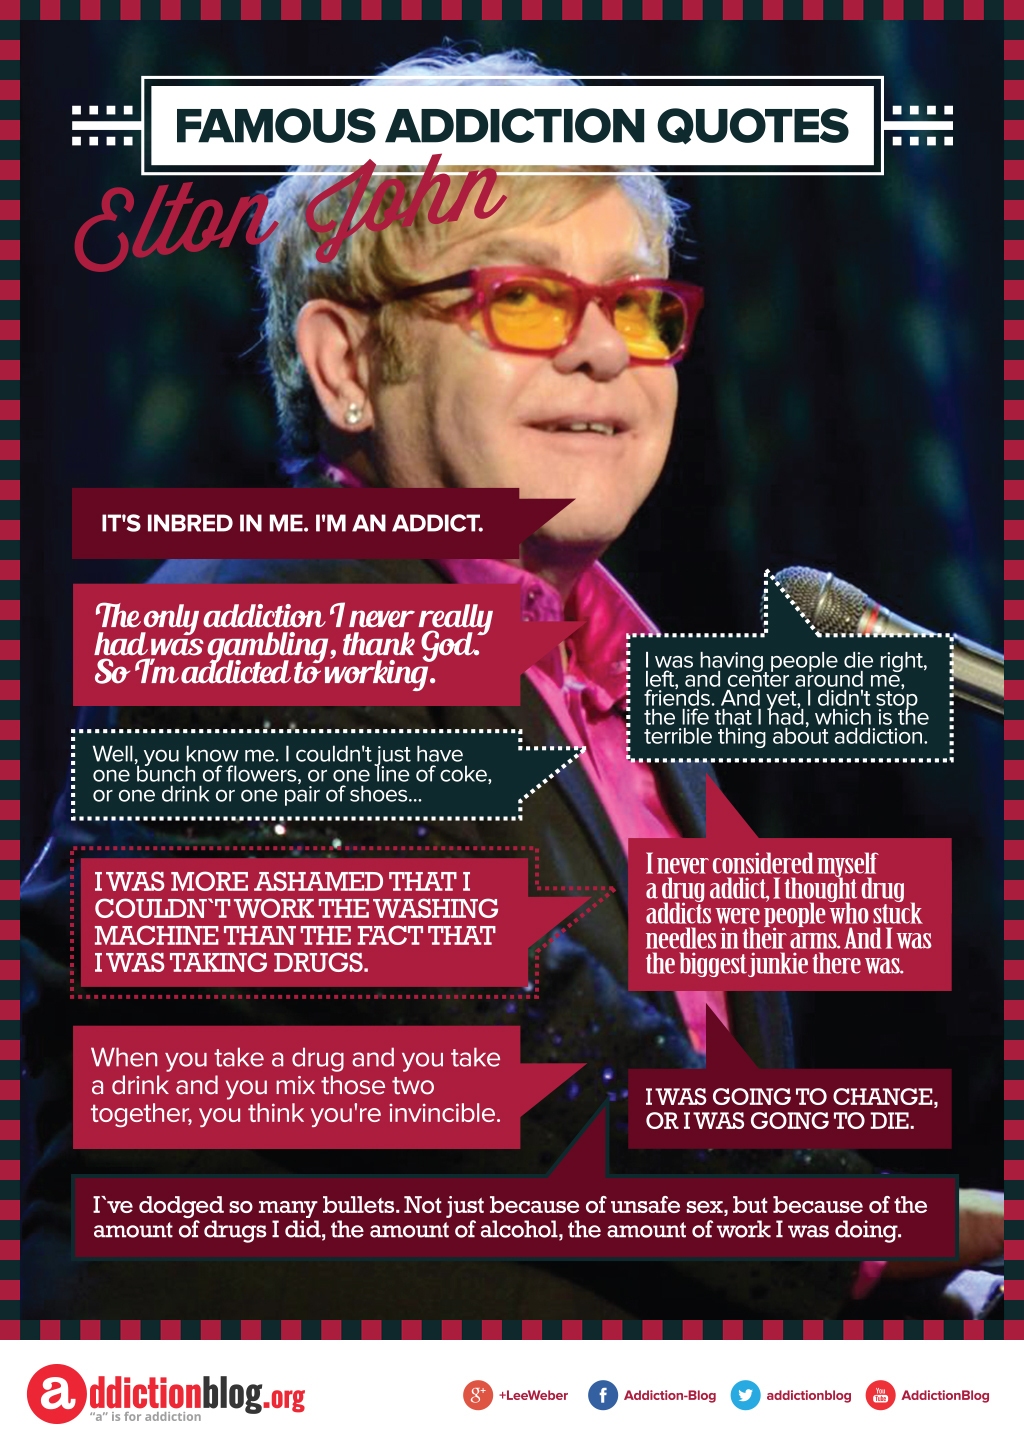 Elton John's quotes drug addiction (INFOGRAPHIC)